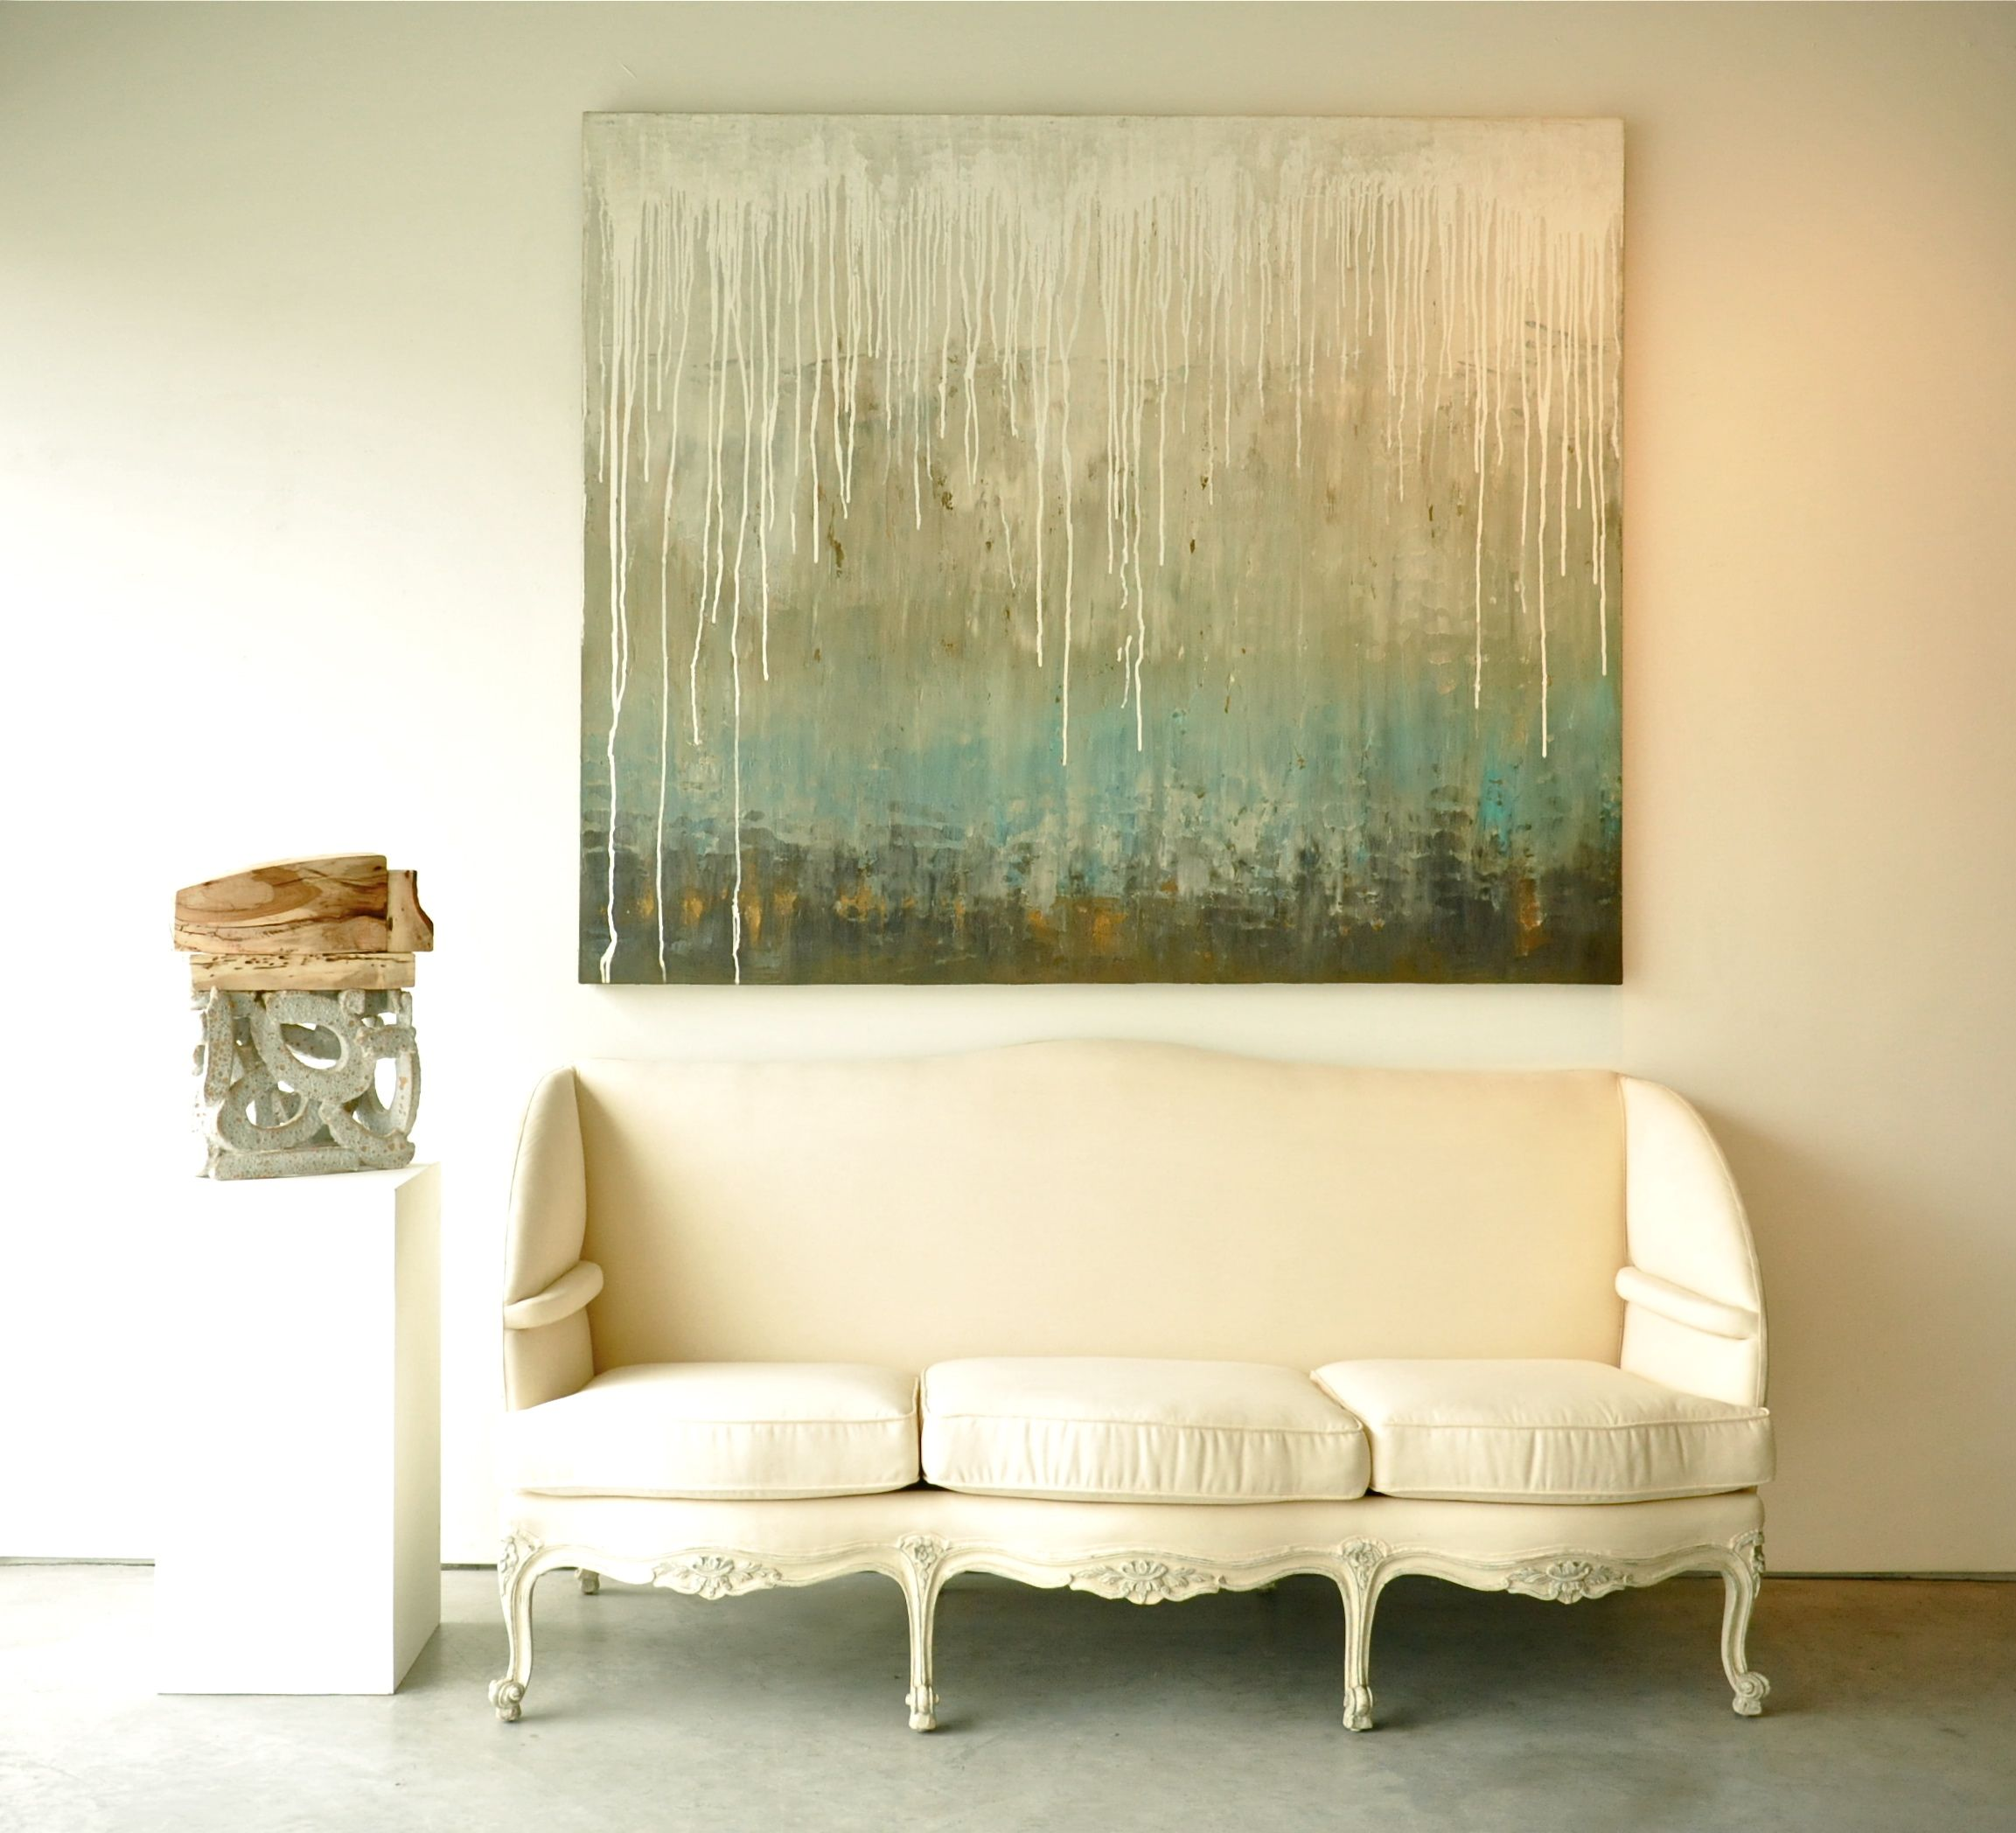 Sofa Paintings Abstract Decoro Leather With Hardwood Frame Melissa Key Art 72x60 Quotrain On The Water Quot